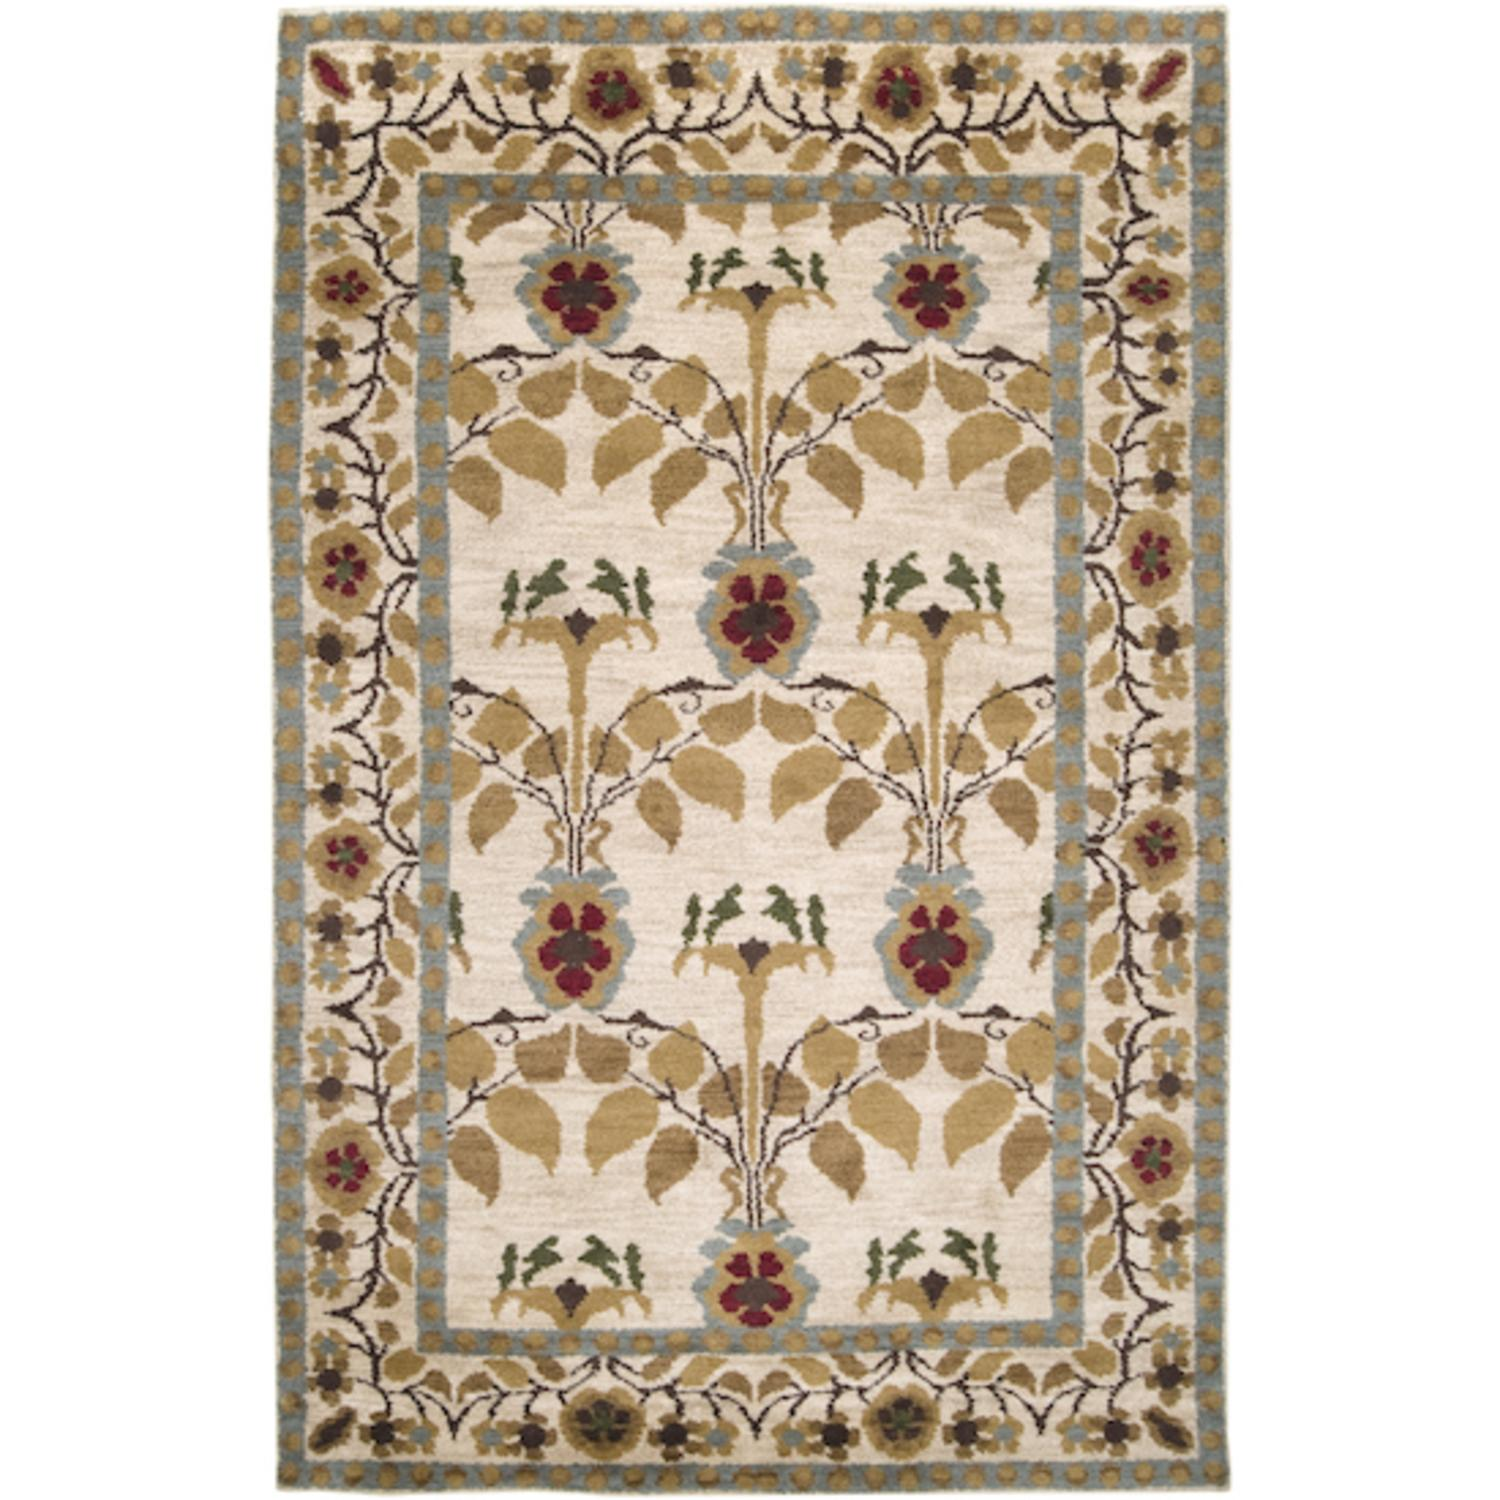 2' x 3' Flower Labrynith Desert Sand and Maroon Red Wool Area Throw Rug